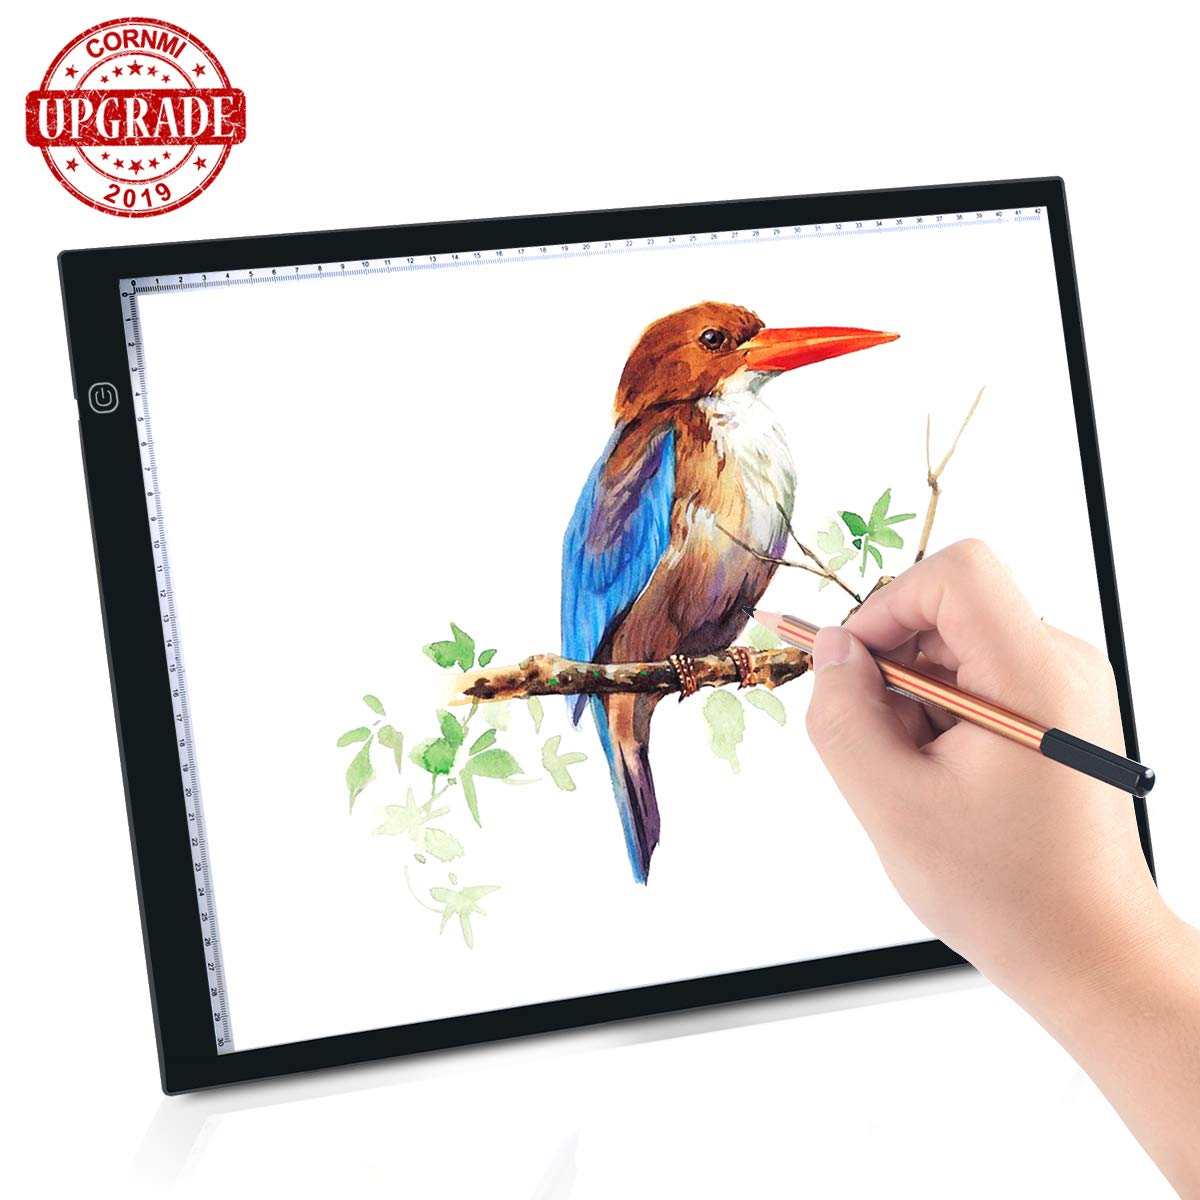 Large A3 LED Light Box Tracing Board, 23'' Light Drawing Pad Diamond Painting 10 Dimmable Brightness Adjustable for Artists Sketching Animation Stencilling X-rayViewing USB Cable, Upgrade Design